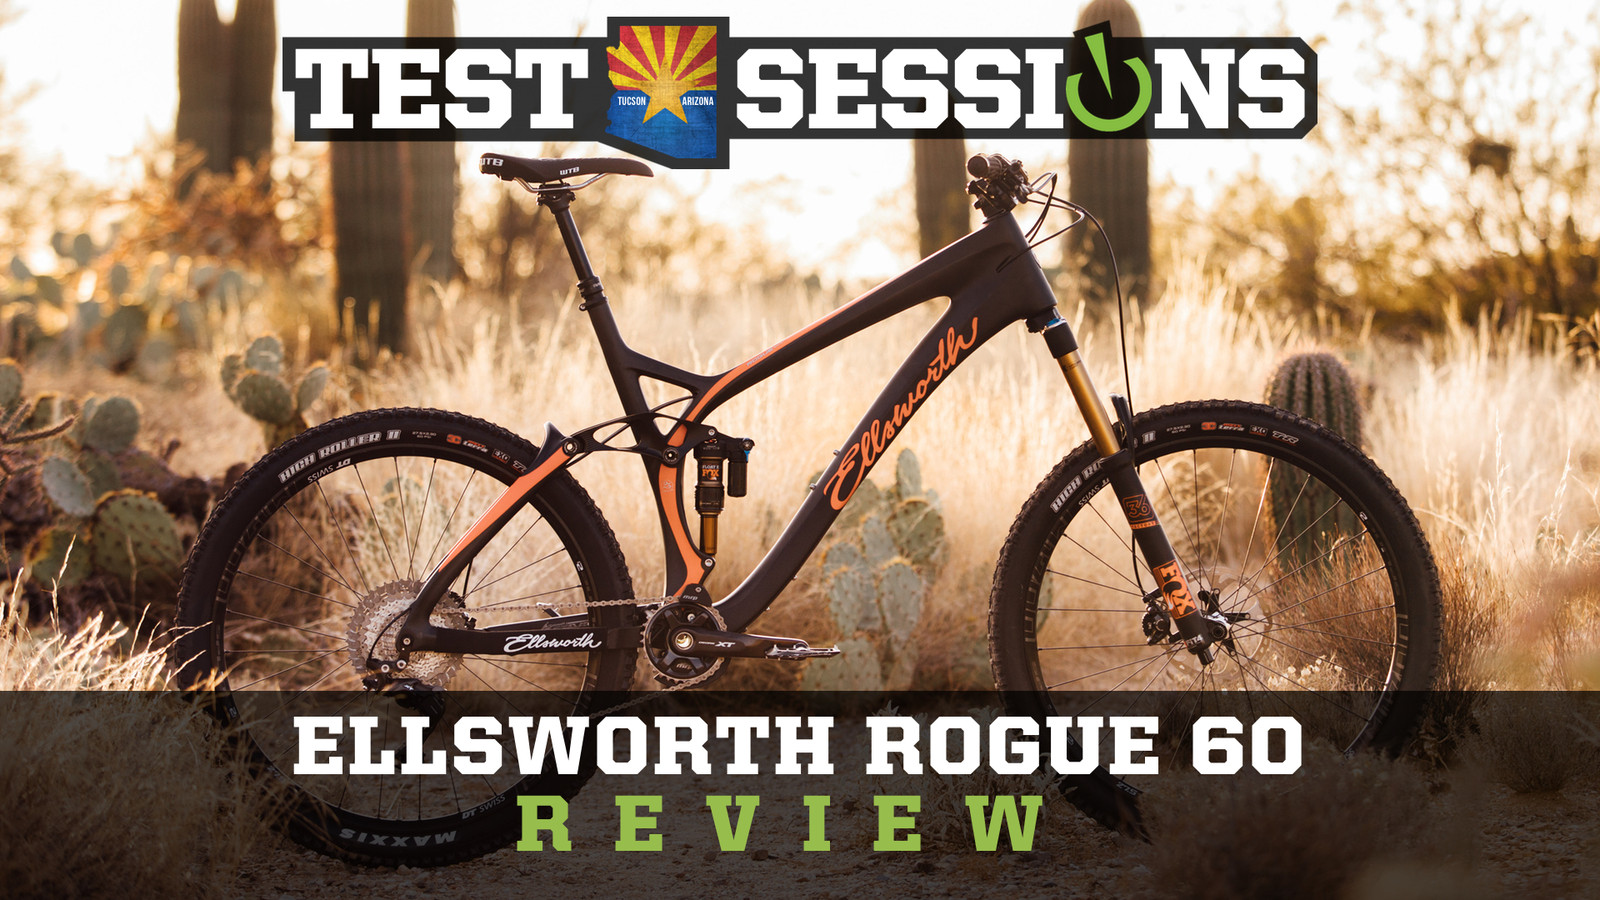 Review - 2017 Ellsworth Rogue 60 from Vital MTB Test Sessions